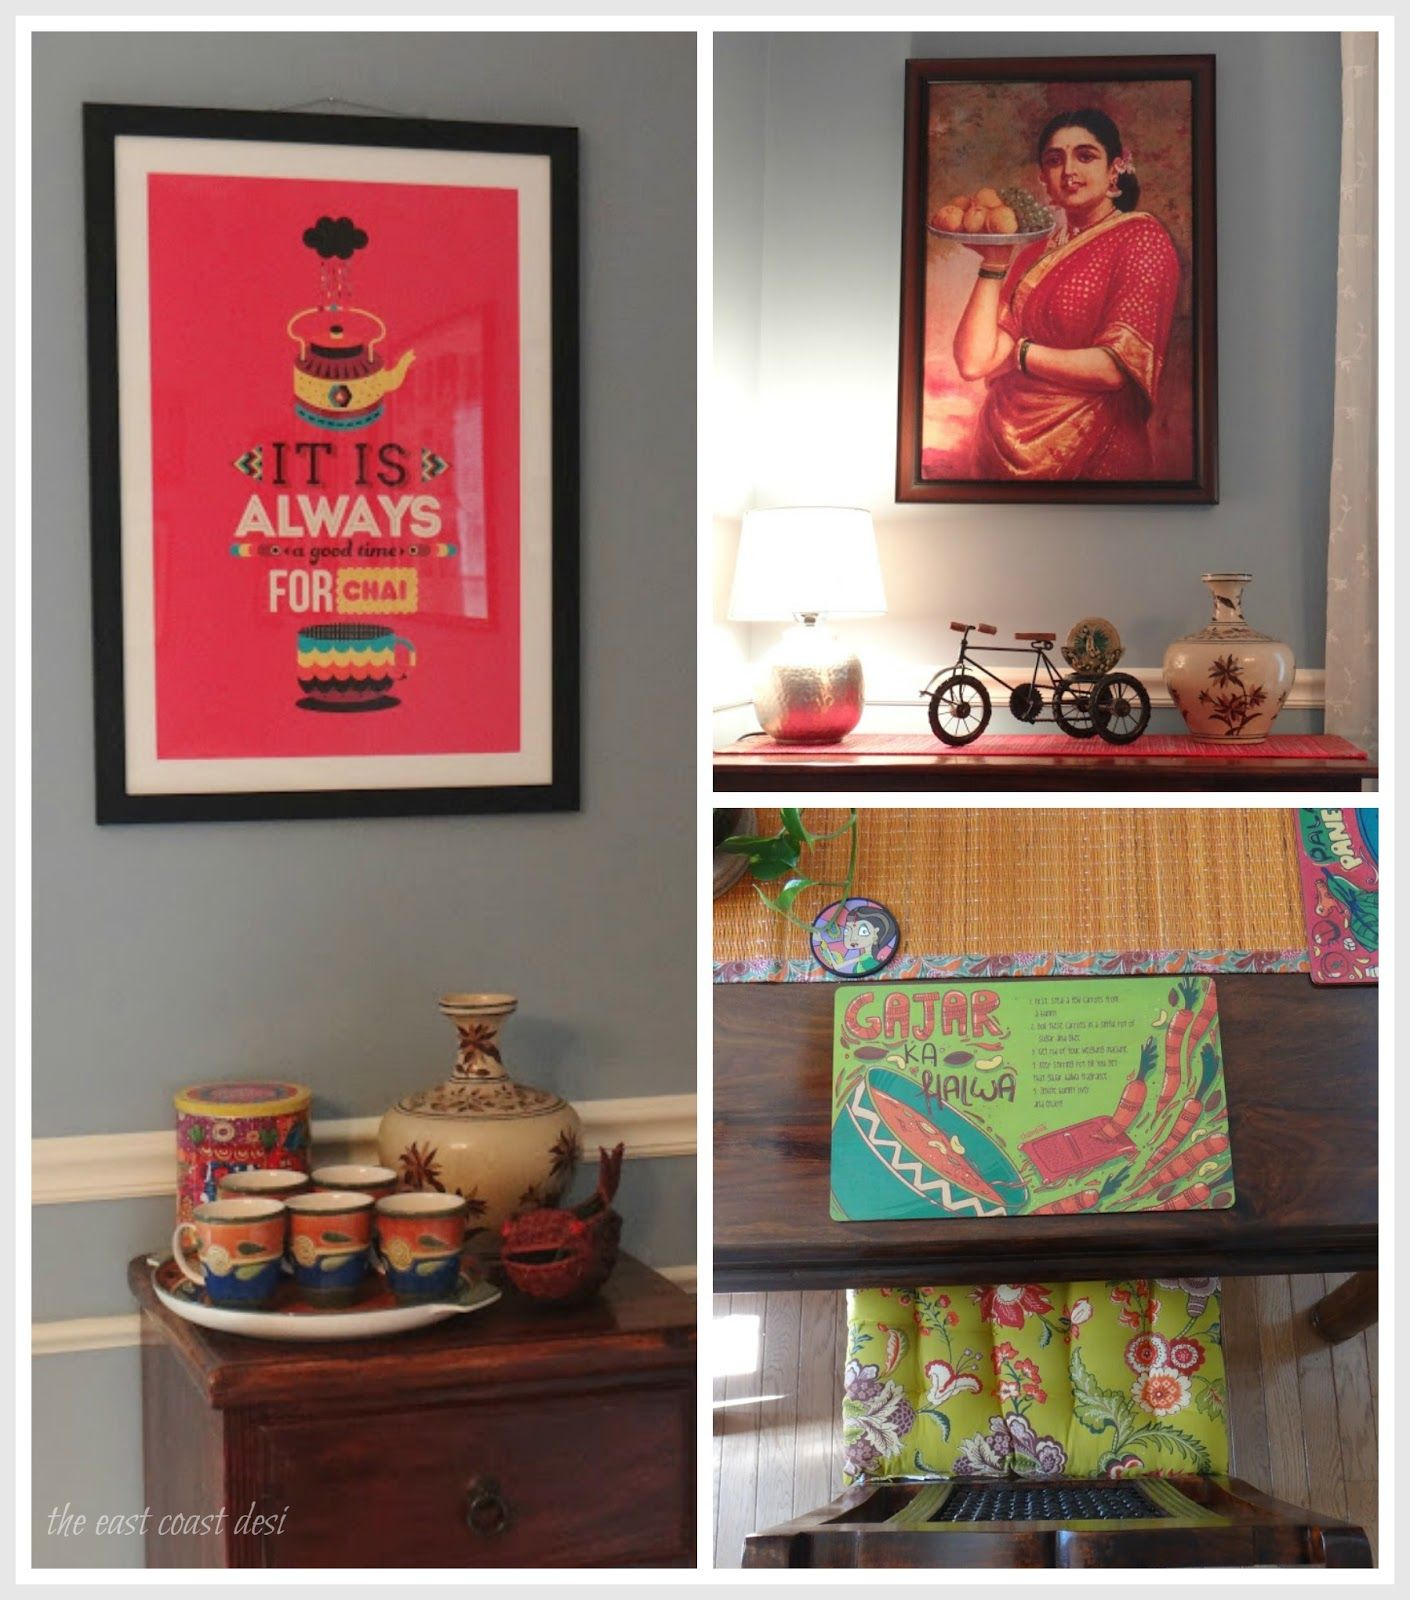 Indian Decor Indian Decor Ideas Indian Home Tour Home: Pin On Home Corners/knick-knacks